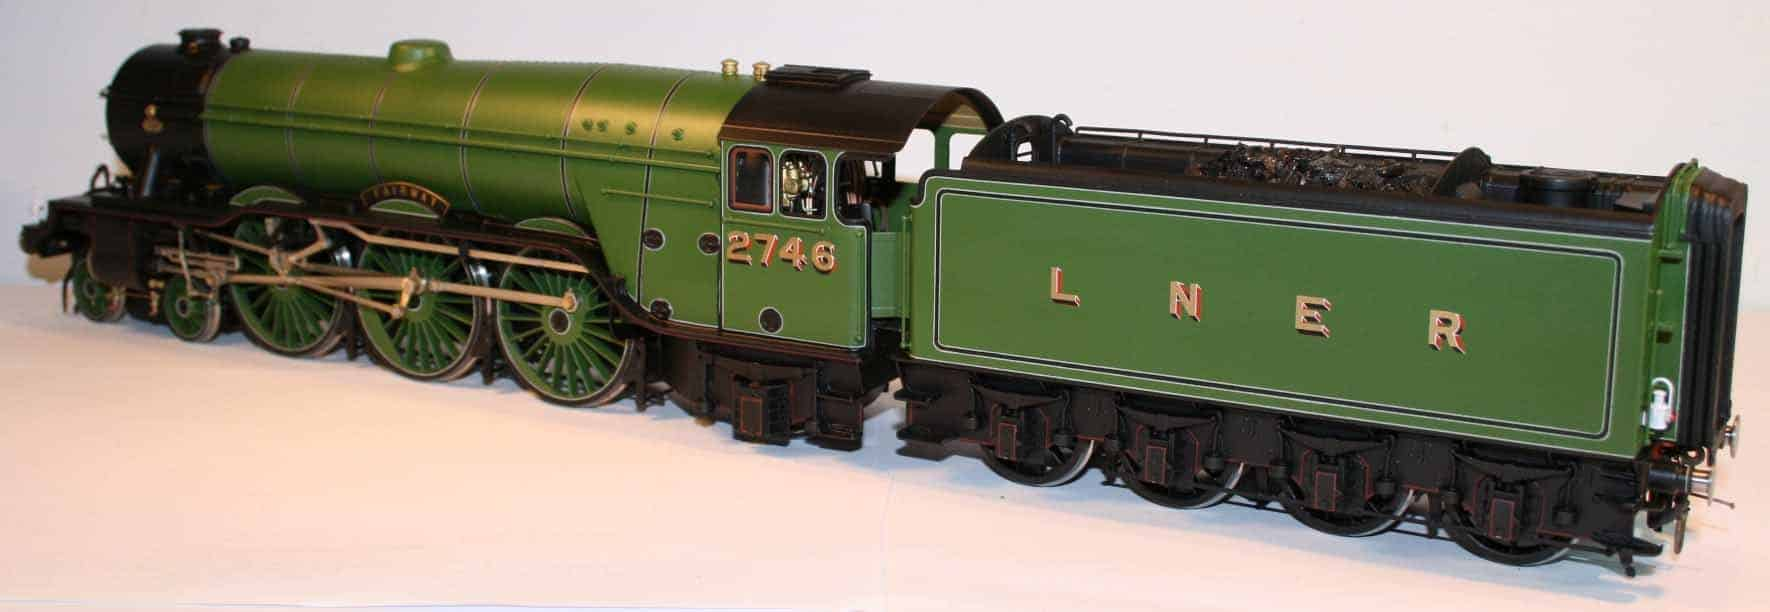 "LNER Class A3 engine number 2746 ""Fairway"""